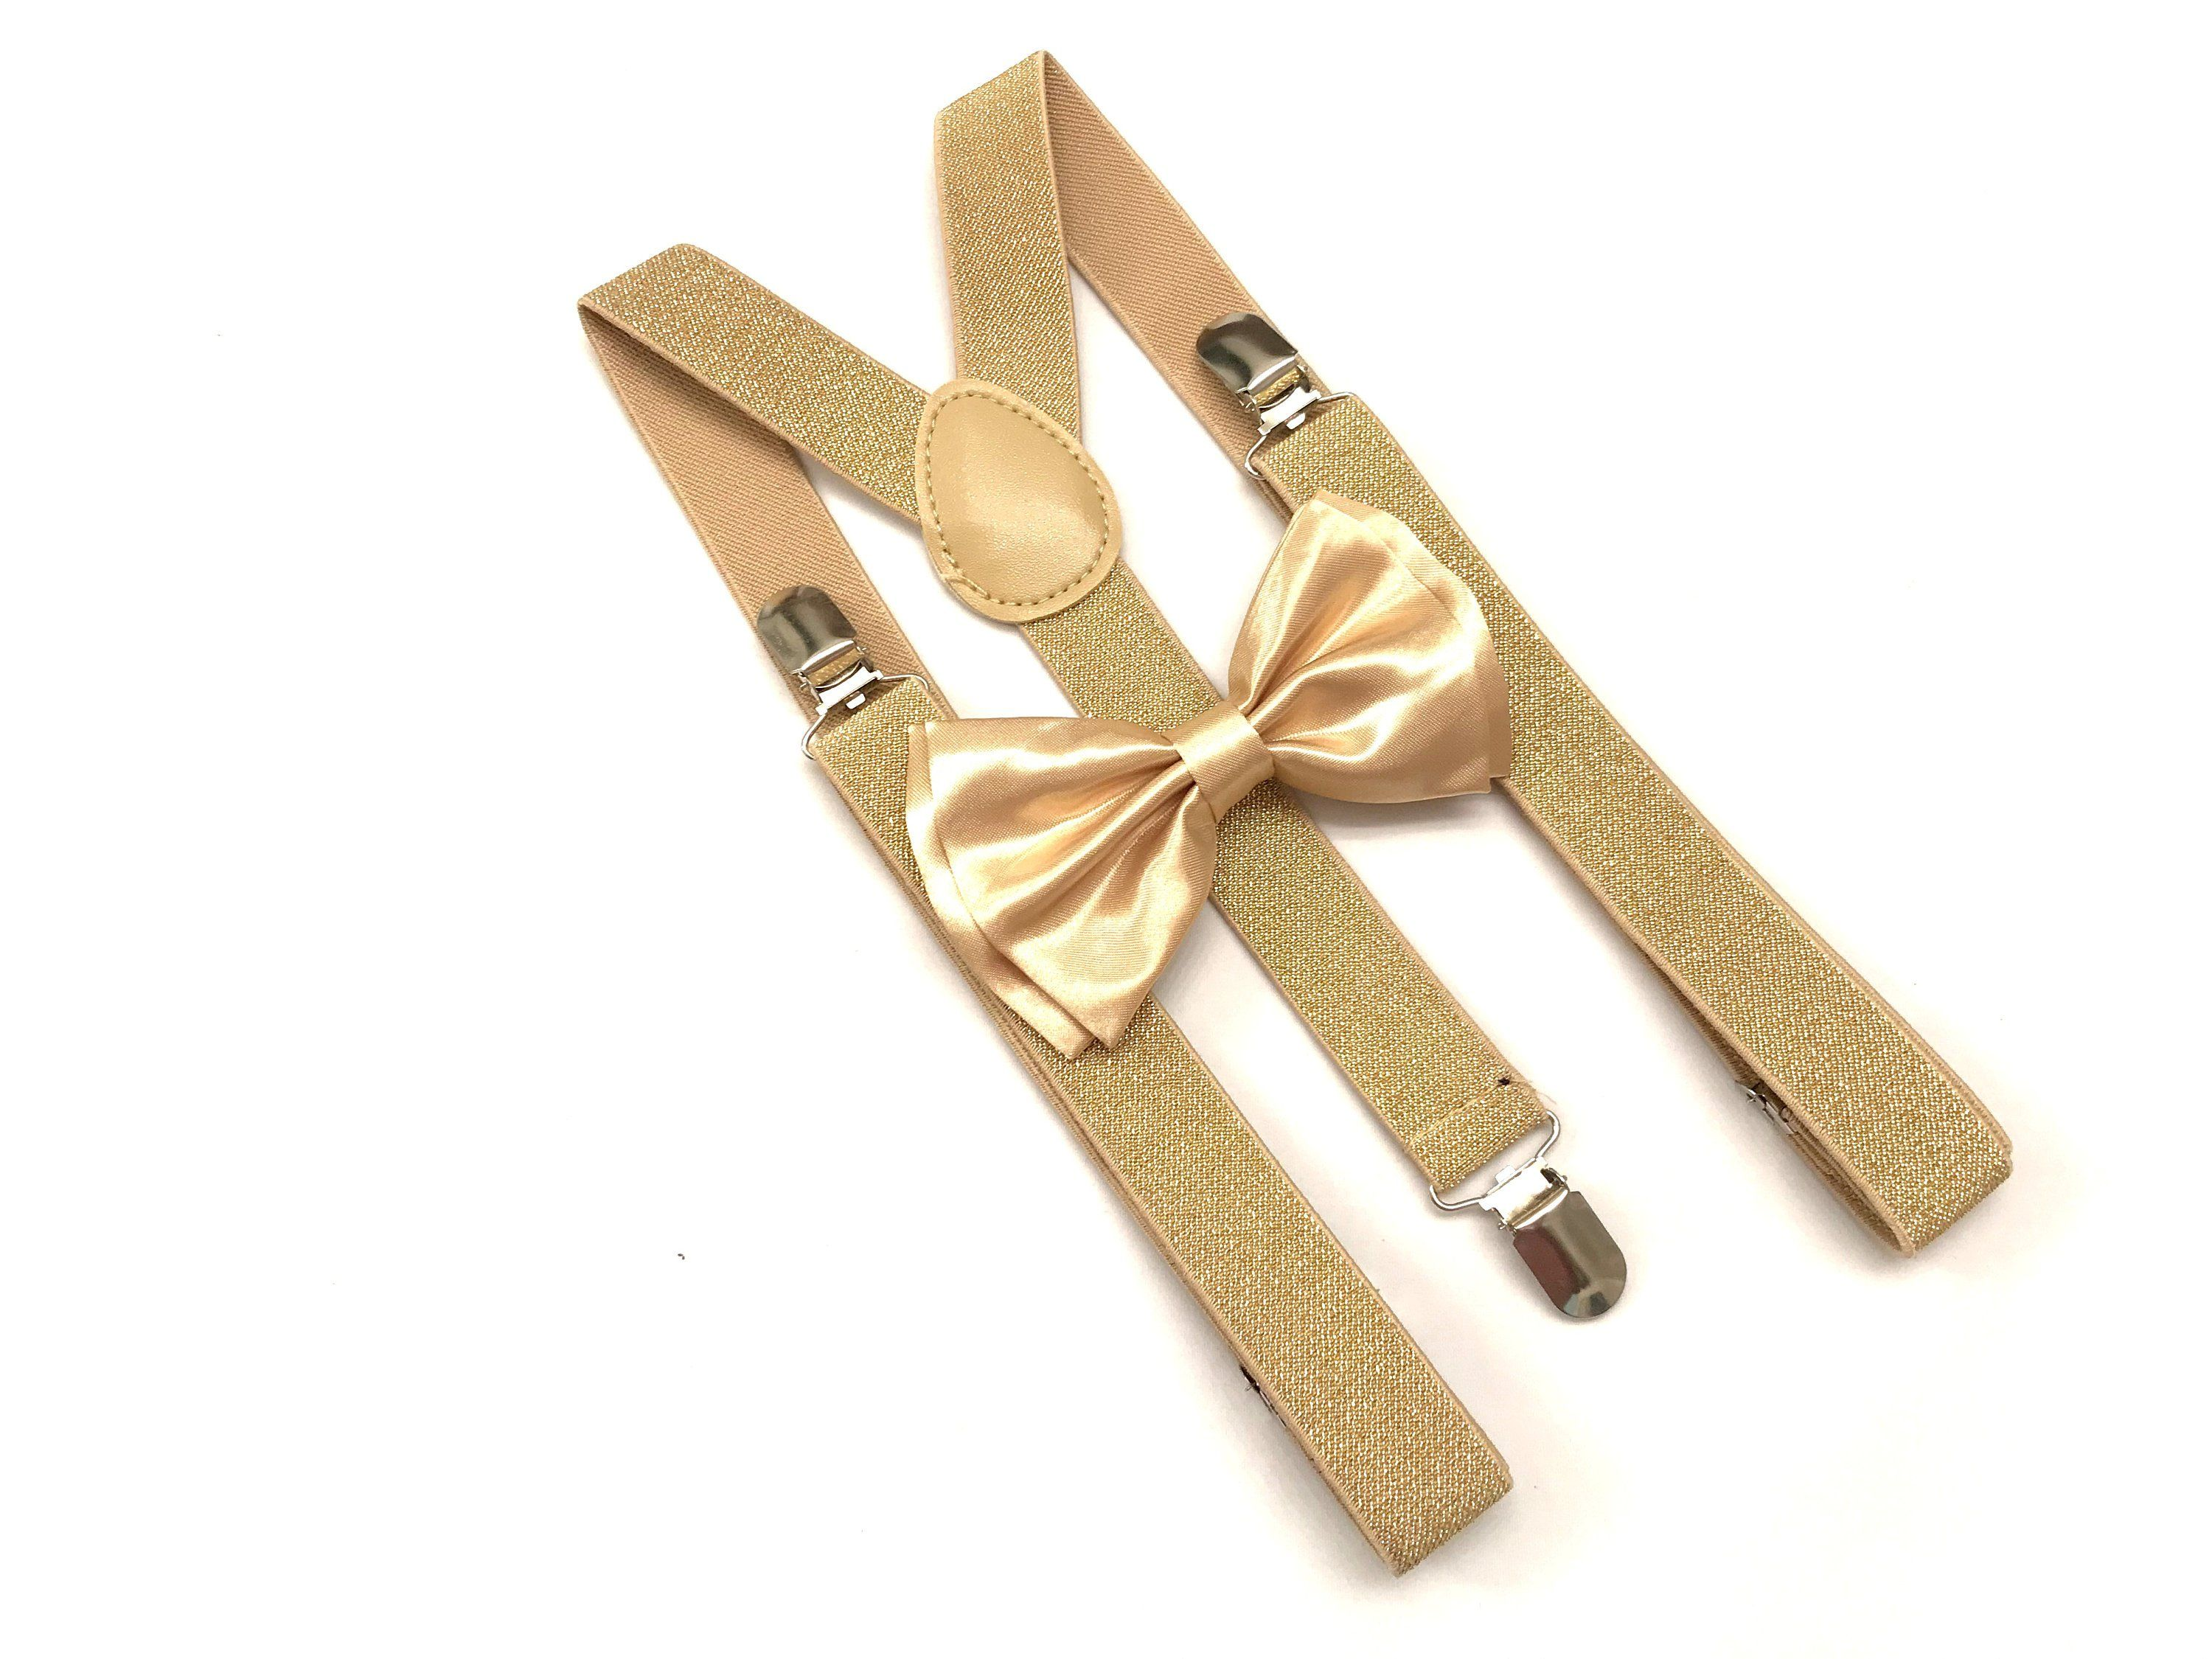 Champaign Gold Suspender and Metallic Bowtie Tuxedo Dress Matching Color /…